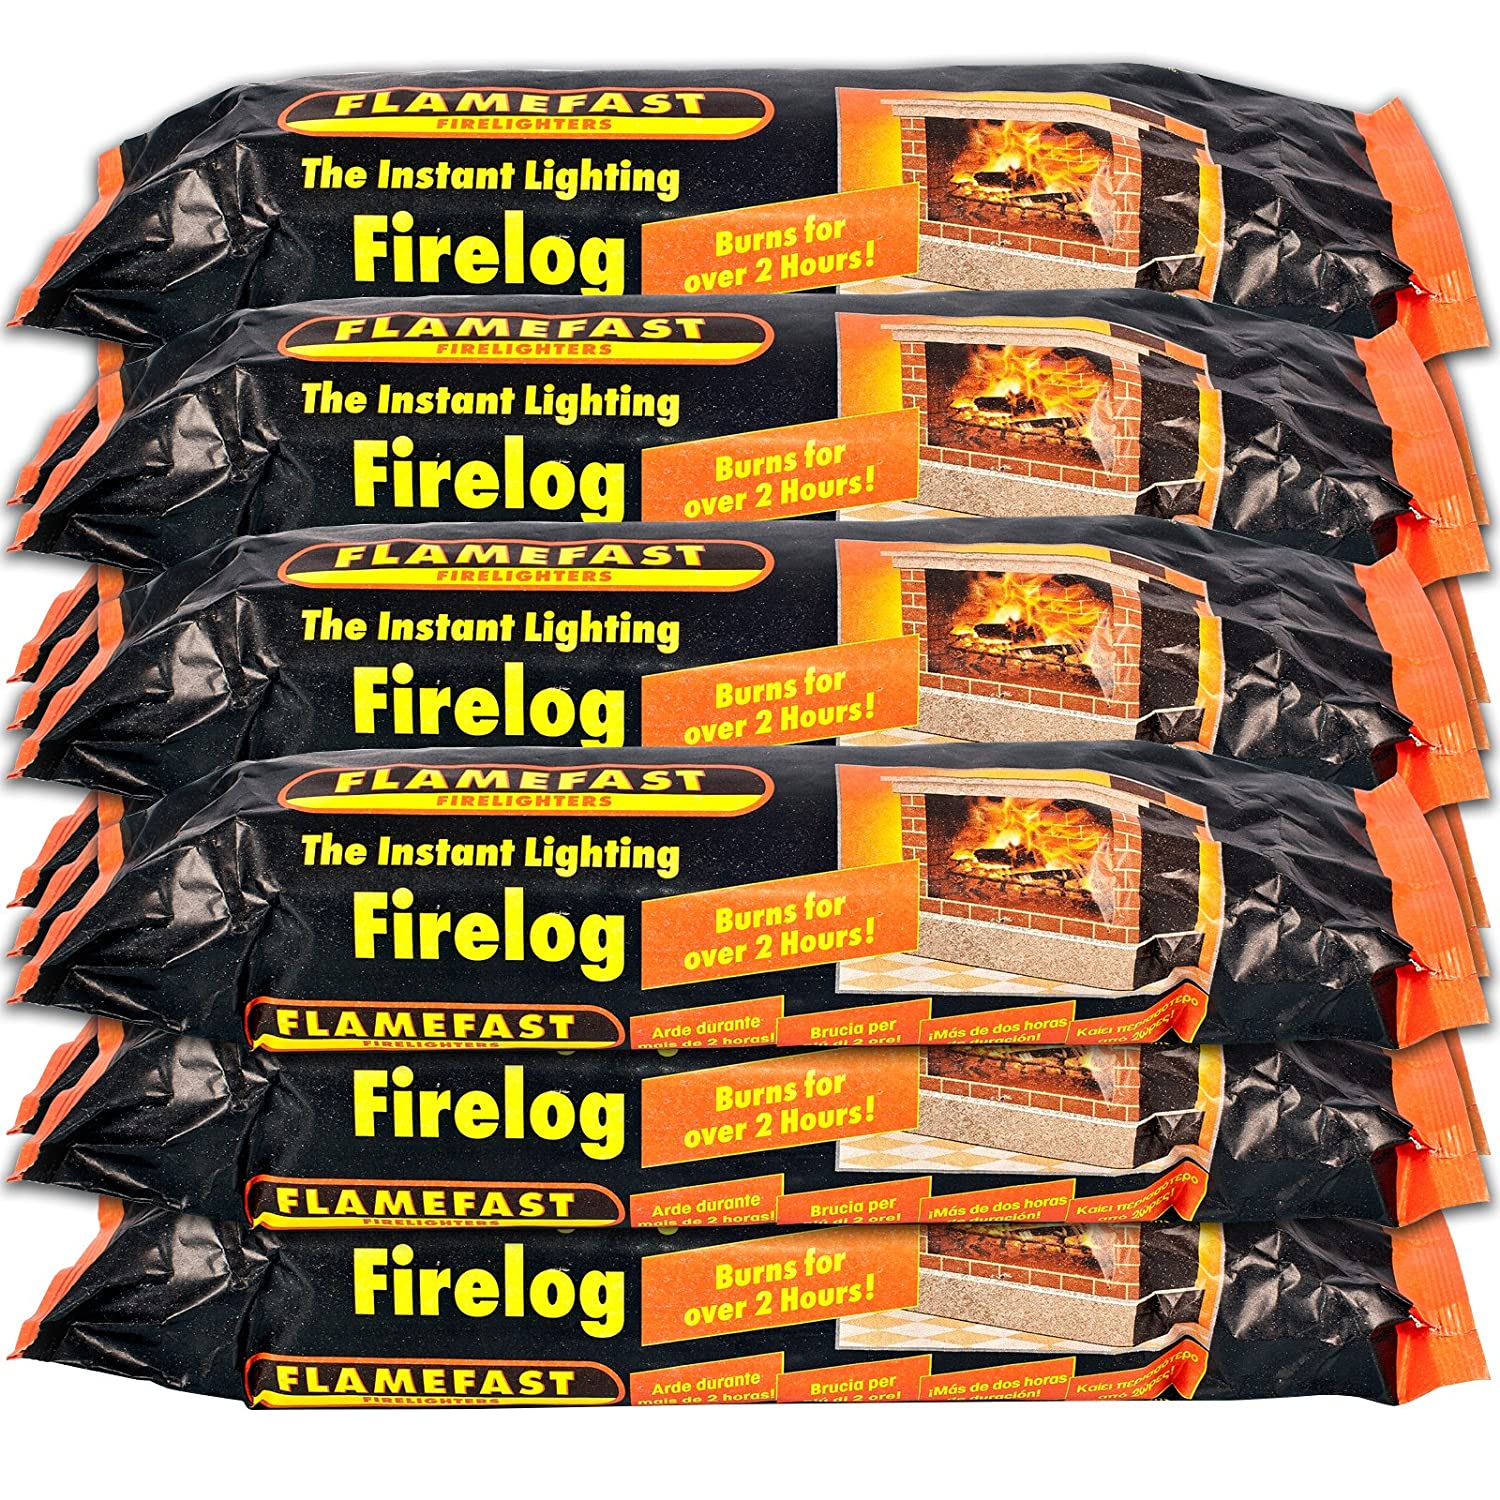 1 X Flamefast Instant Lighting Smokeless Firelog Burns for Over 2 Hours & Tigerbox Safety Matches